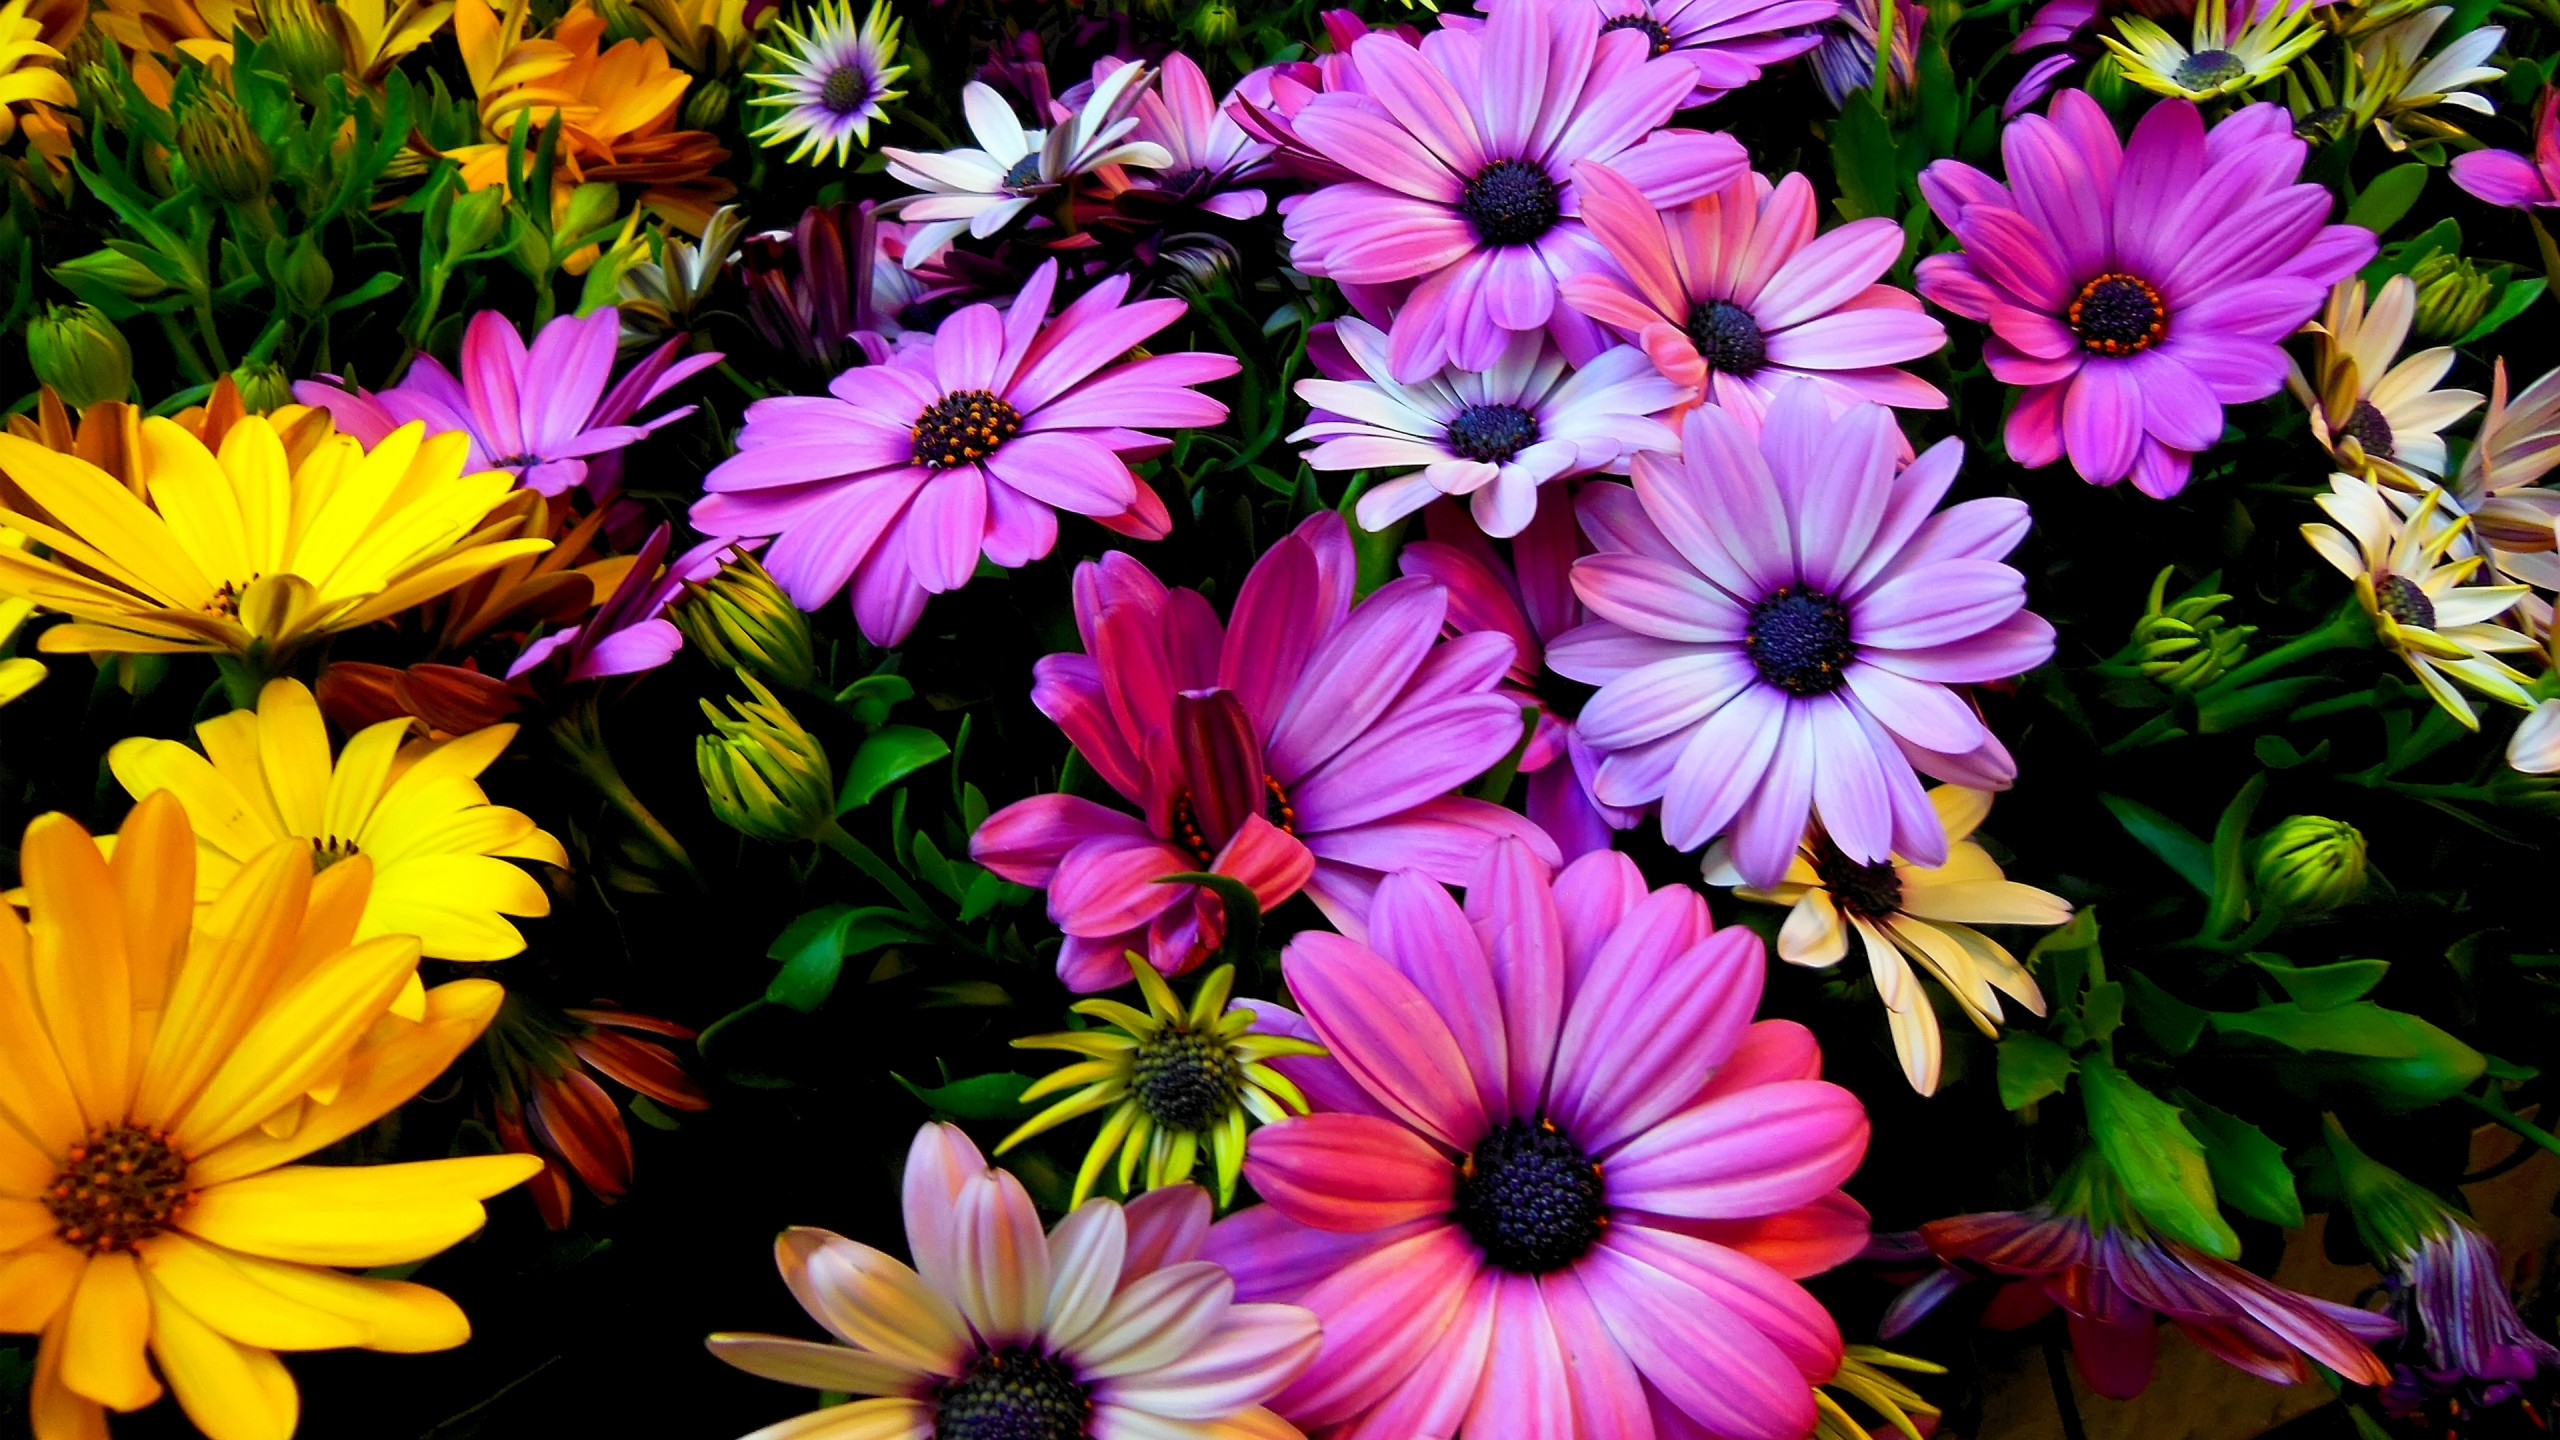 Images have the power to move your emotions like few things in life. Purple Yellow Daisy Flowers Wallpapers   HD Wallpapers